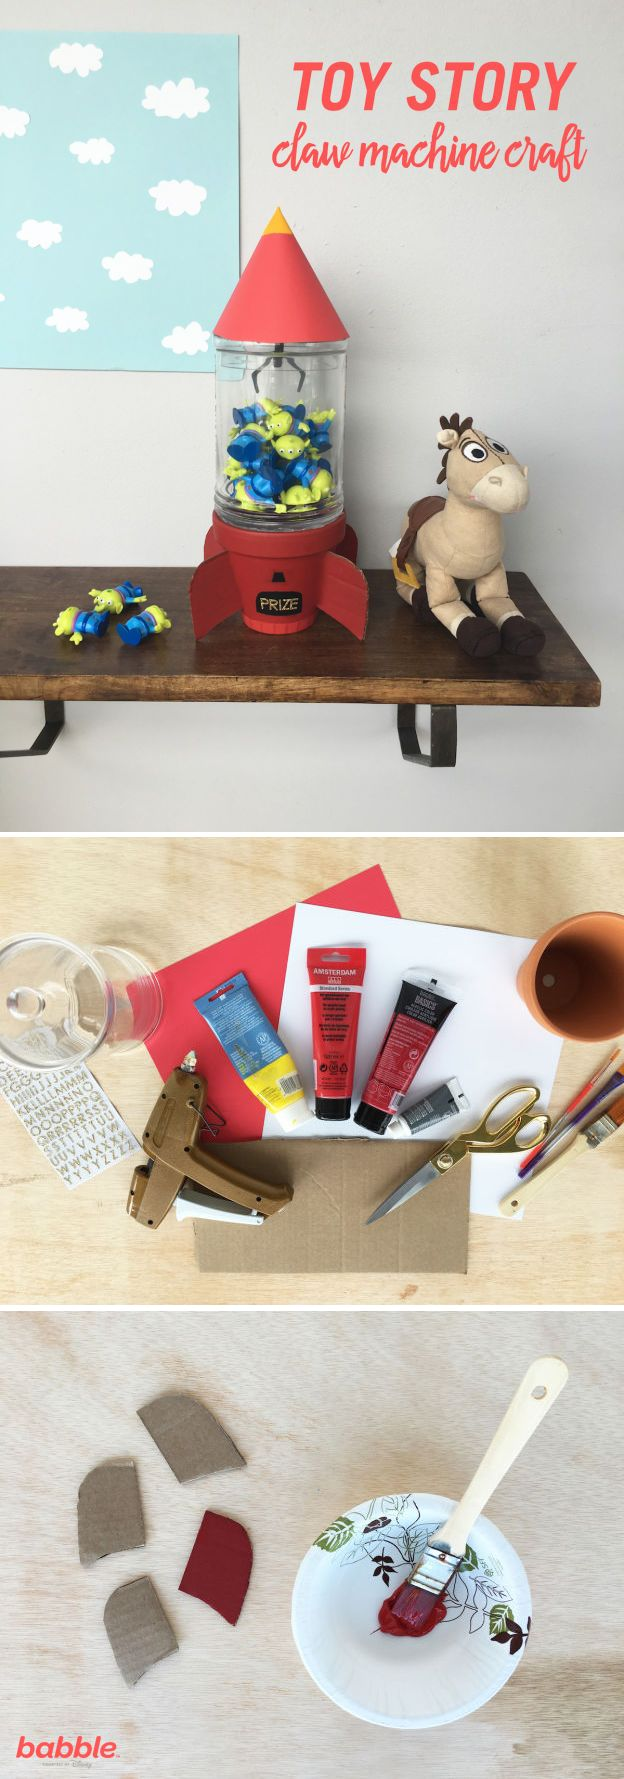 This craft is so perfect! Not only does it make for adorable kids room decor, but it's also functional as a toy storage container. With a little paint, cardboard, and card stock, you can transform a flower pot and apothecary jar into a mini DIY Toy Story Claw Machine. This adorable Disney DIY will instantly make cleanup time fun for the kids.